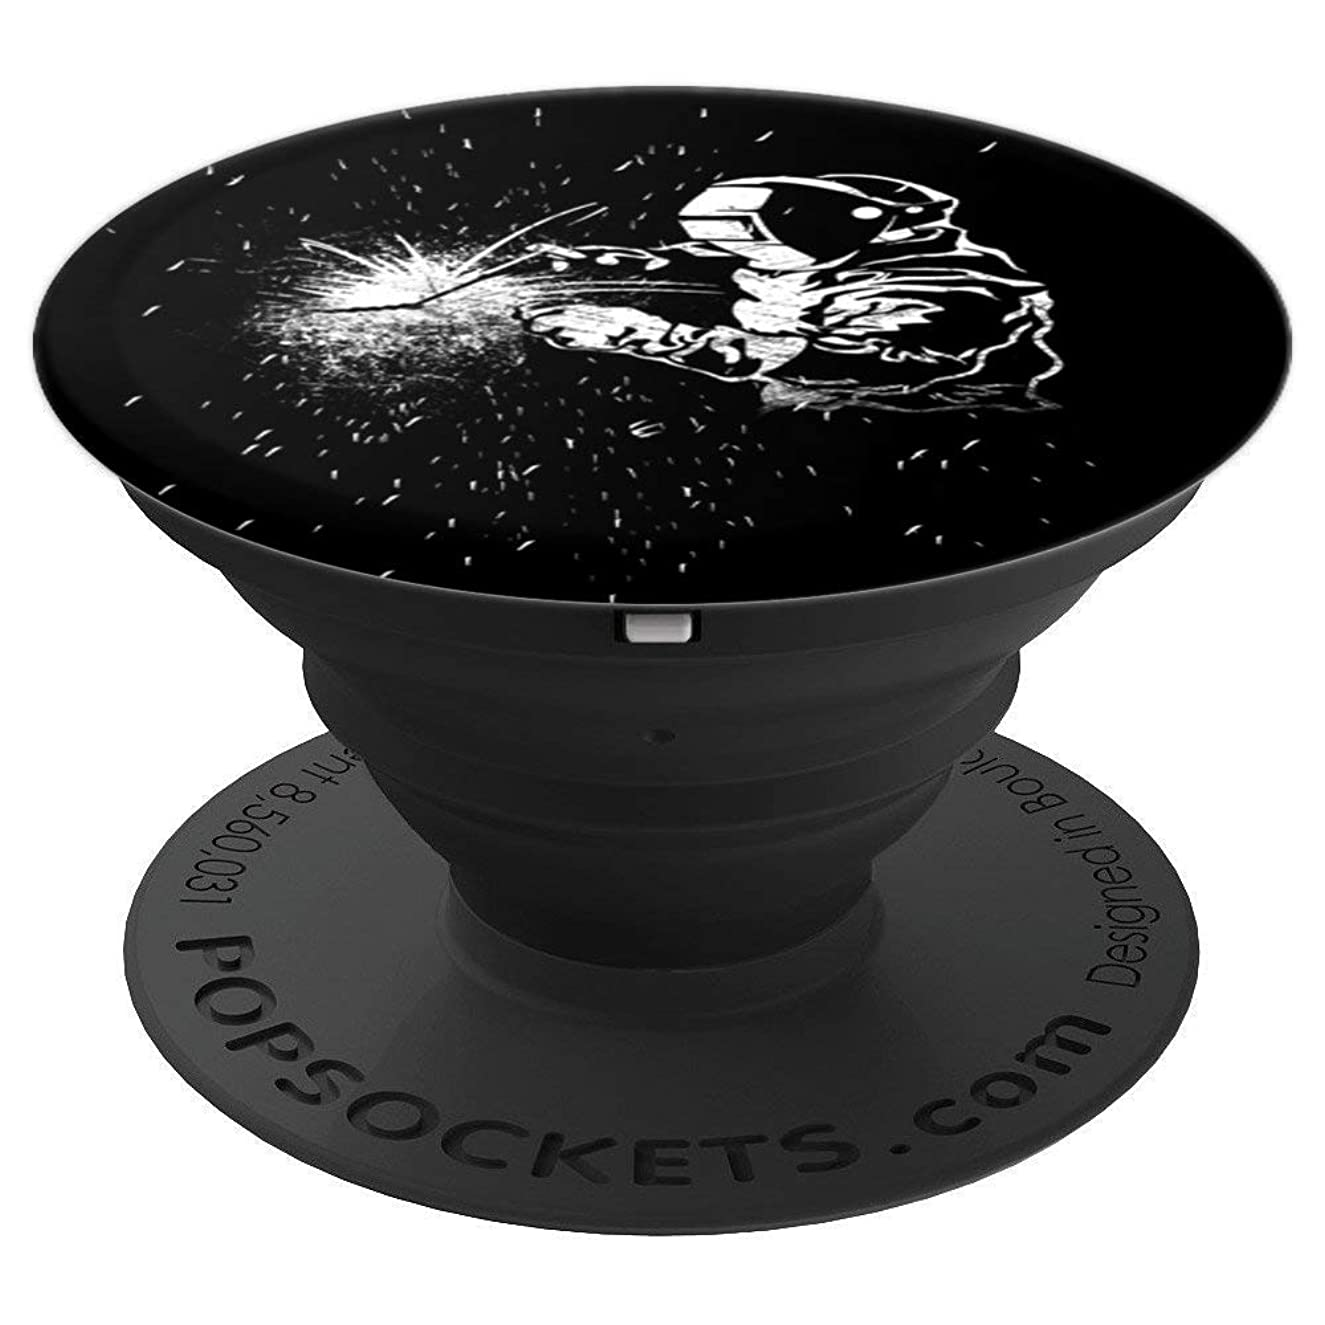 Welding Man Welder PopSockets Grip - PopSockets Grip and Stand for Phones and Tablets